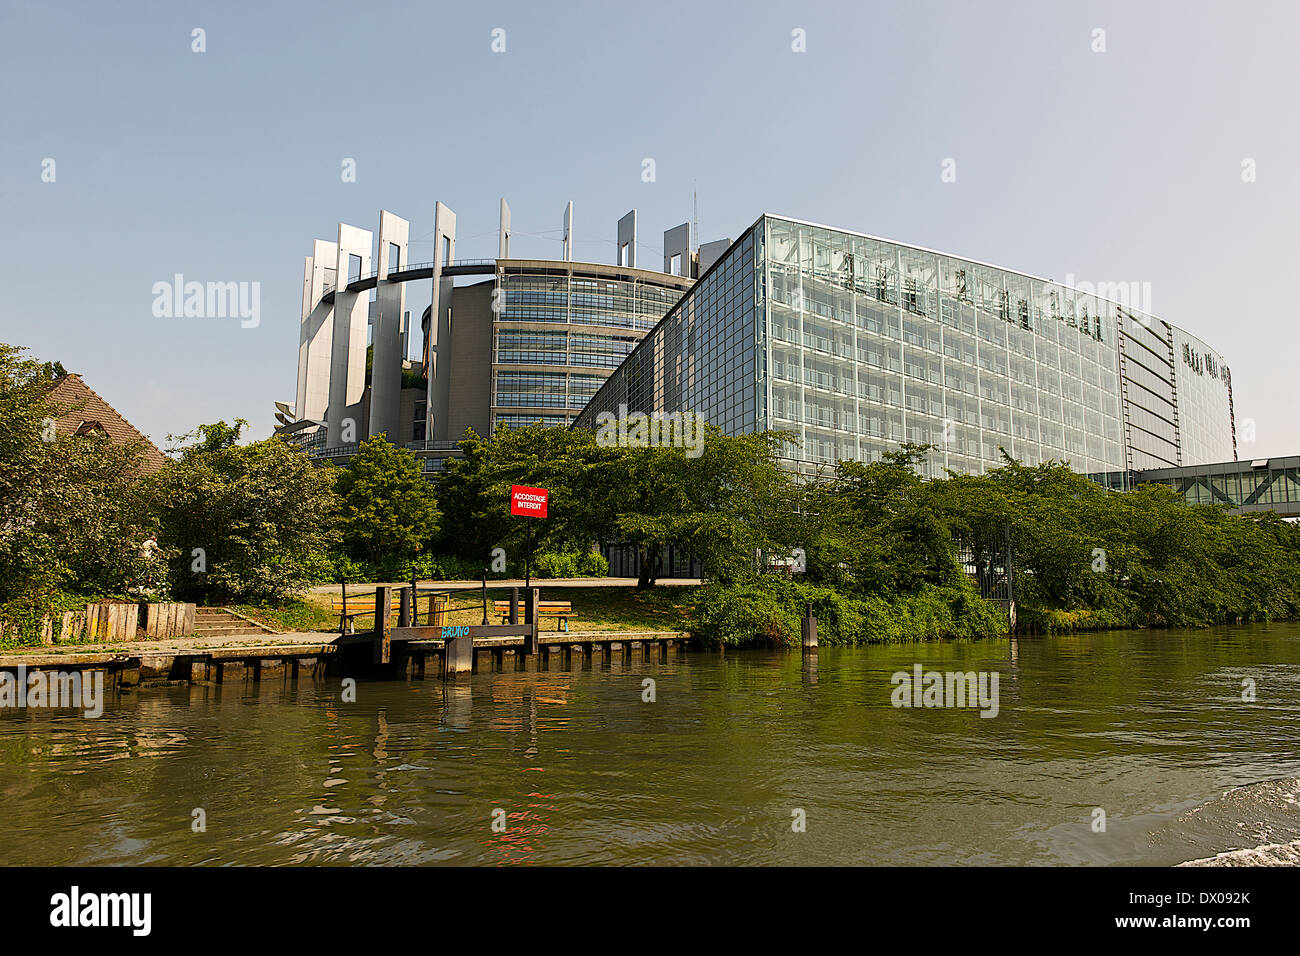 European Parliament building in Strasbourg, France Stock Photo